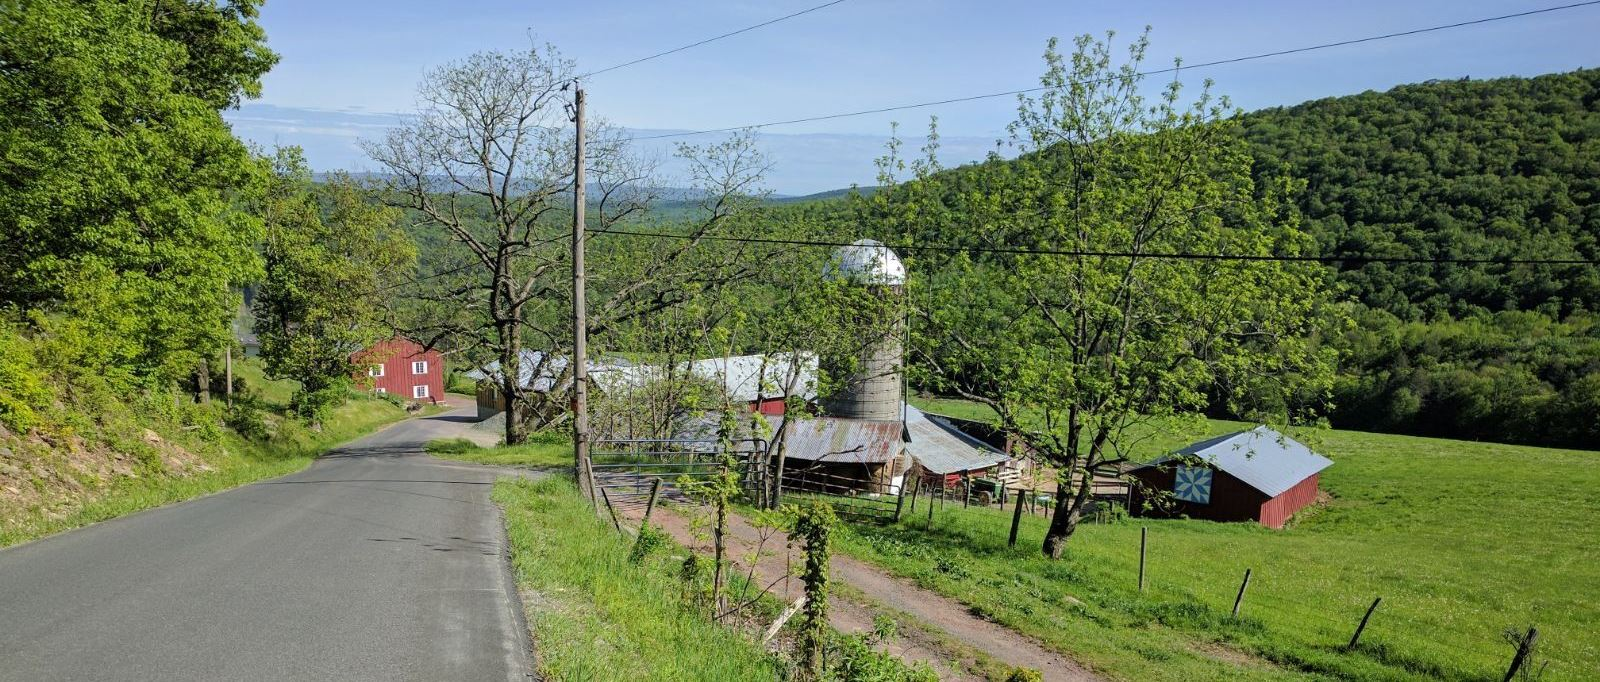 Bicycle climb up Glade Hill - silo , barn, farmhouse, road, forest